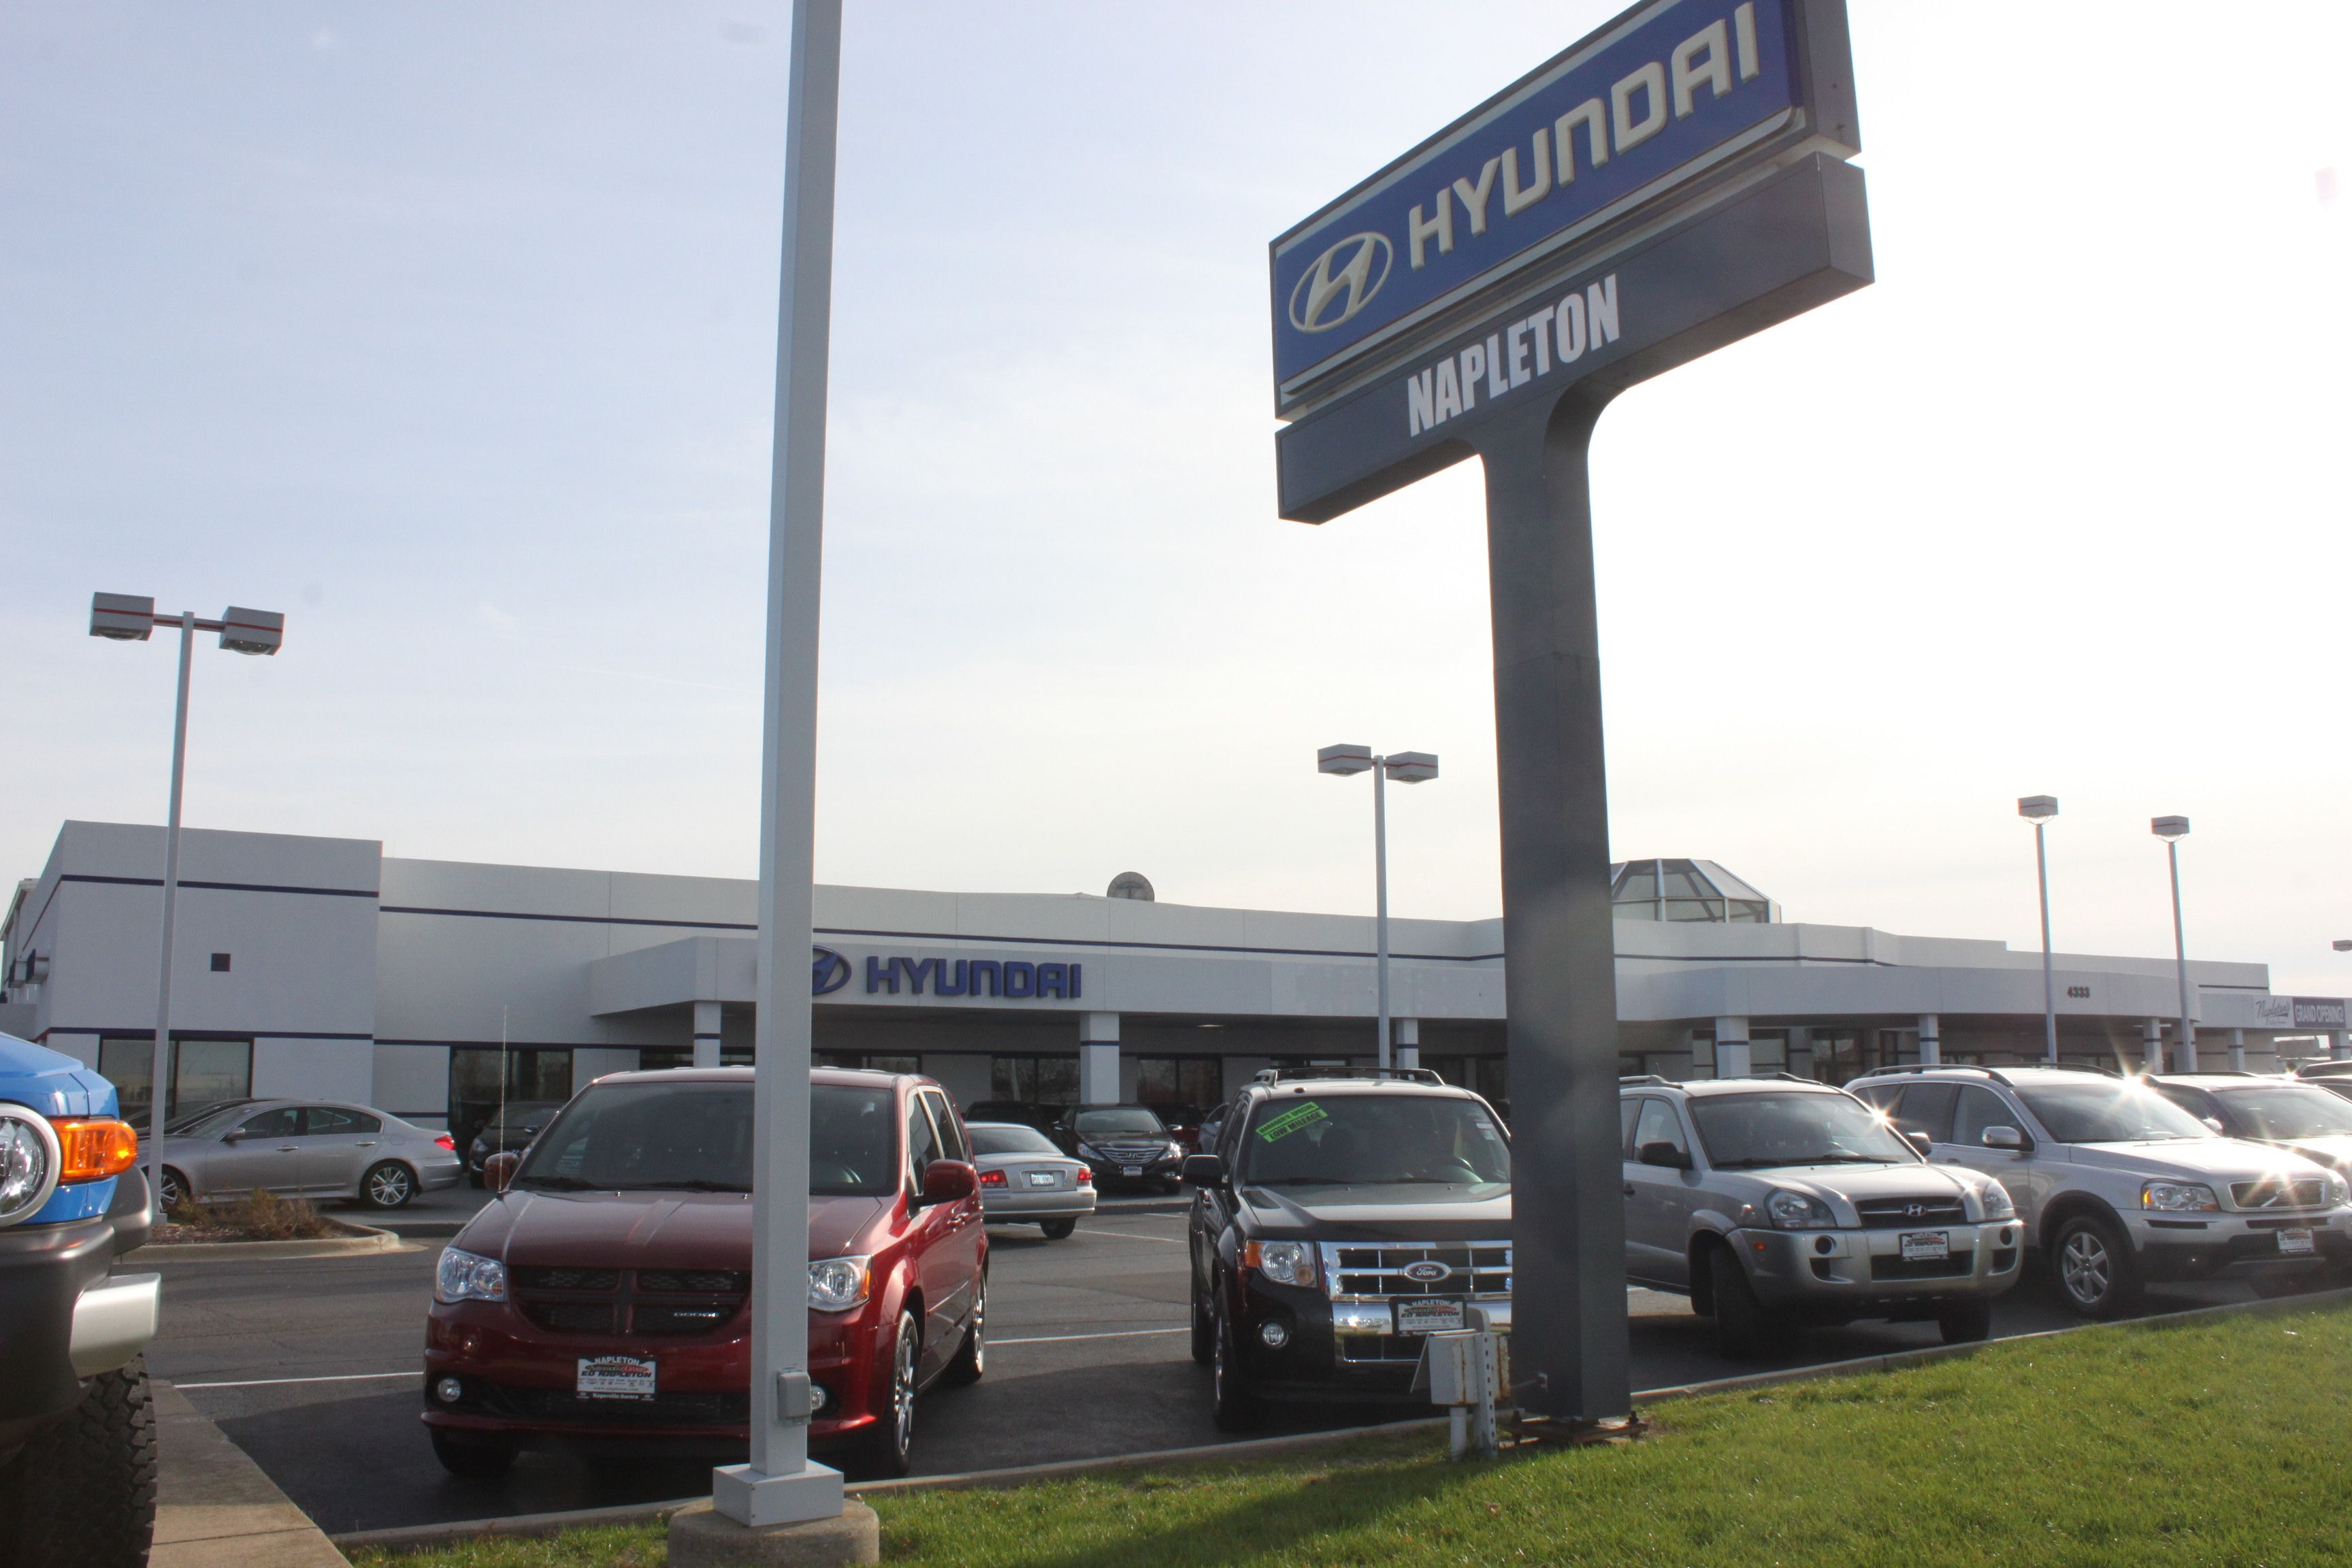 Napleton's Valley Hyundai | Napleton's Valley Hyundai | Pinterest